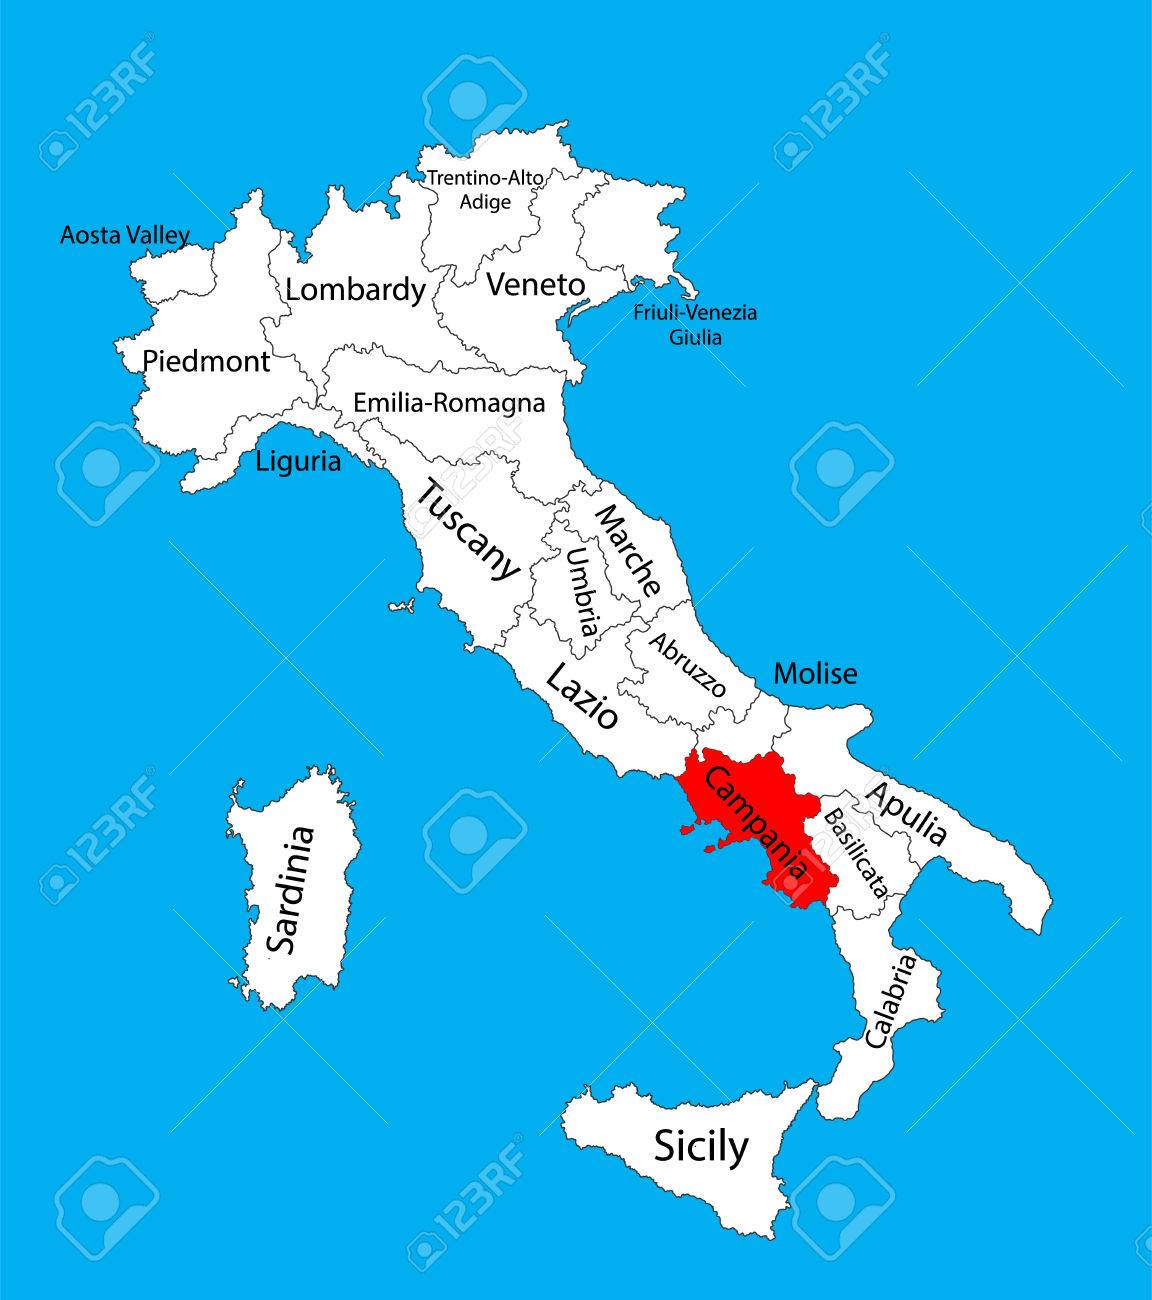 Campania Italy Vector Map Illustration Isolated On Background